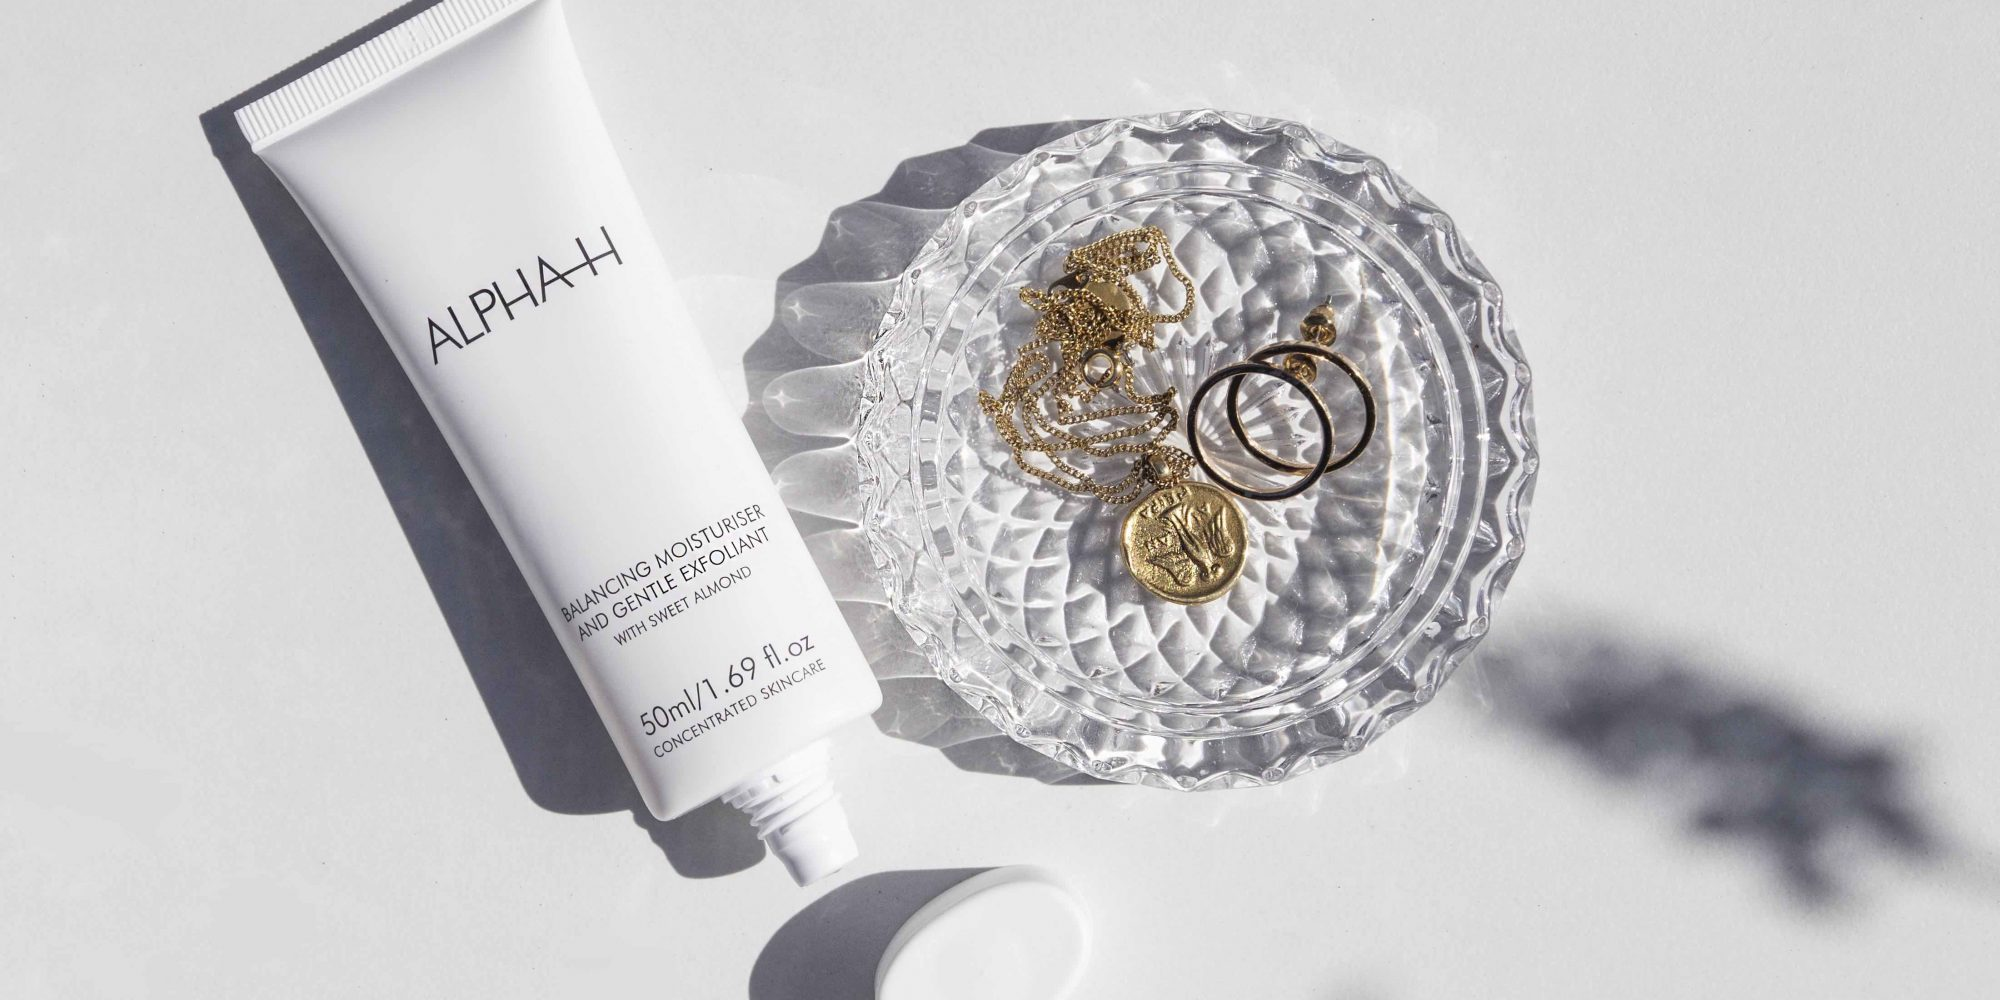 The Popularity Of Skincare Acids Has Pushed Alpha-H Into The Spotlight At Sephora